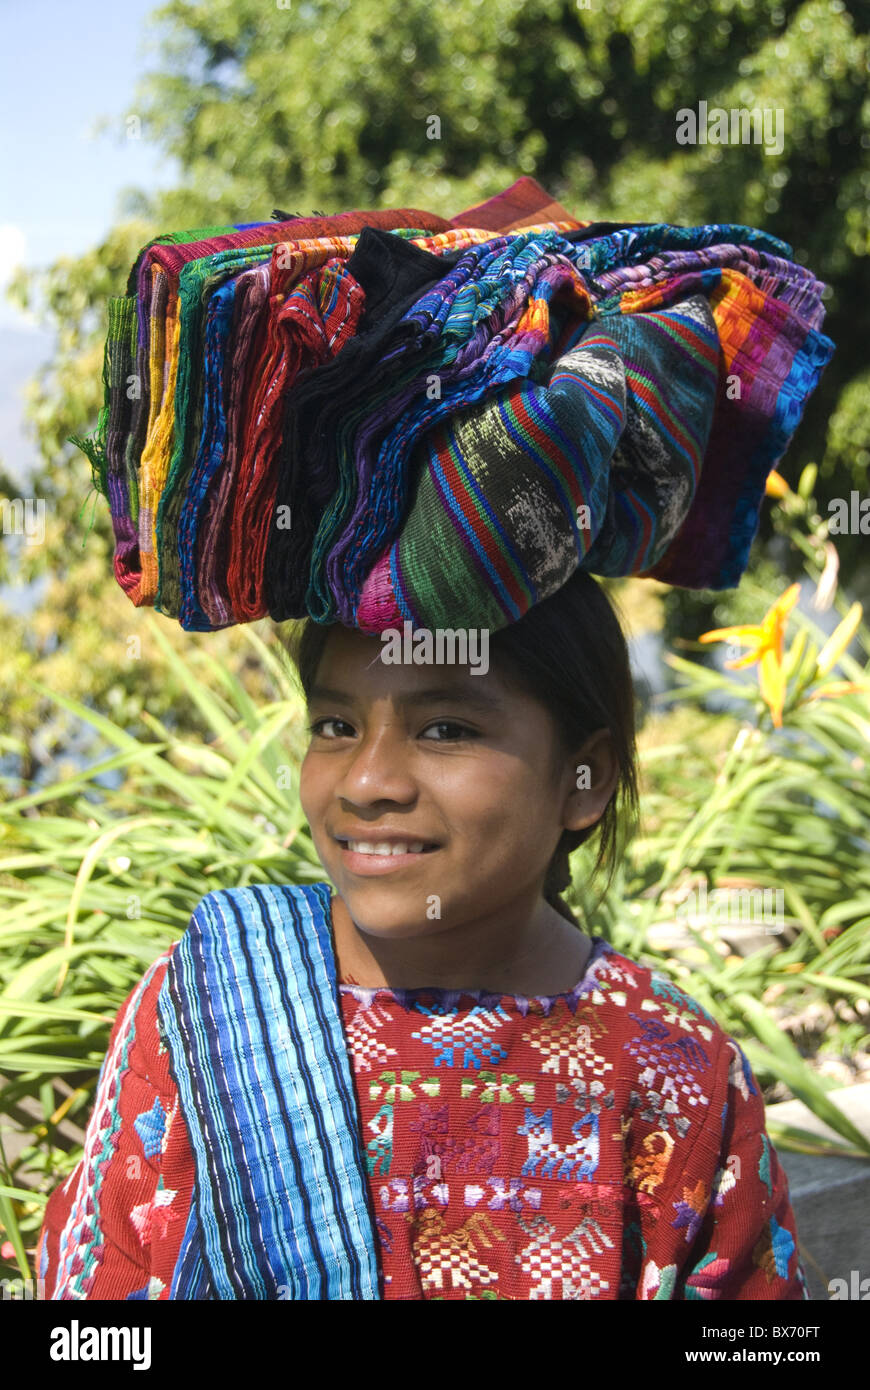 Indigenous girl carrying textiles for sale on her head, Lake Atitlan, Guatemala, Central America - Stock Image